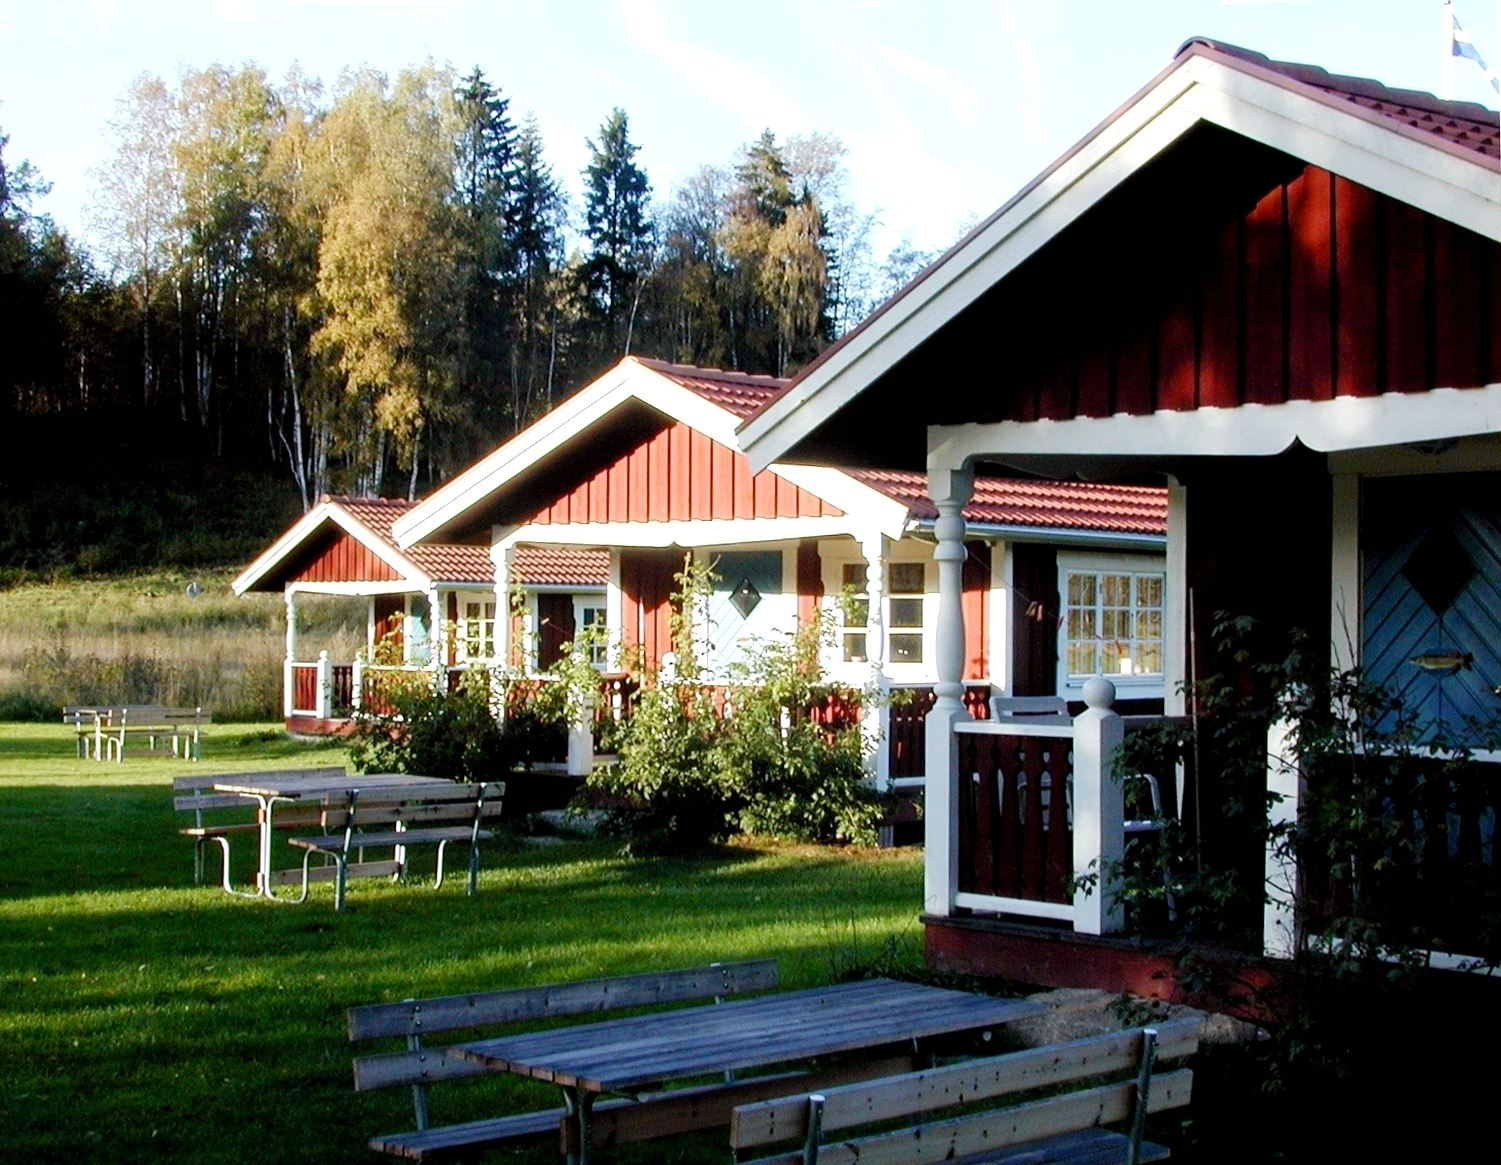 Ratt o Roder holiday village and conference